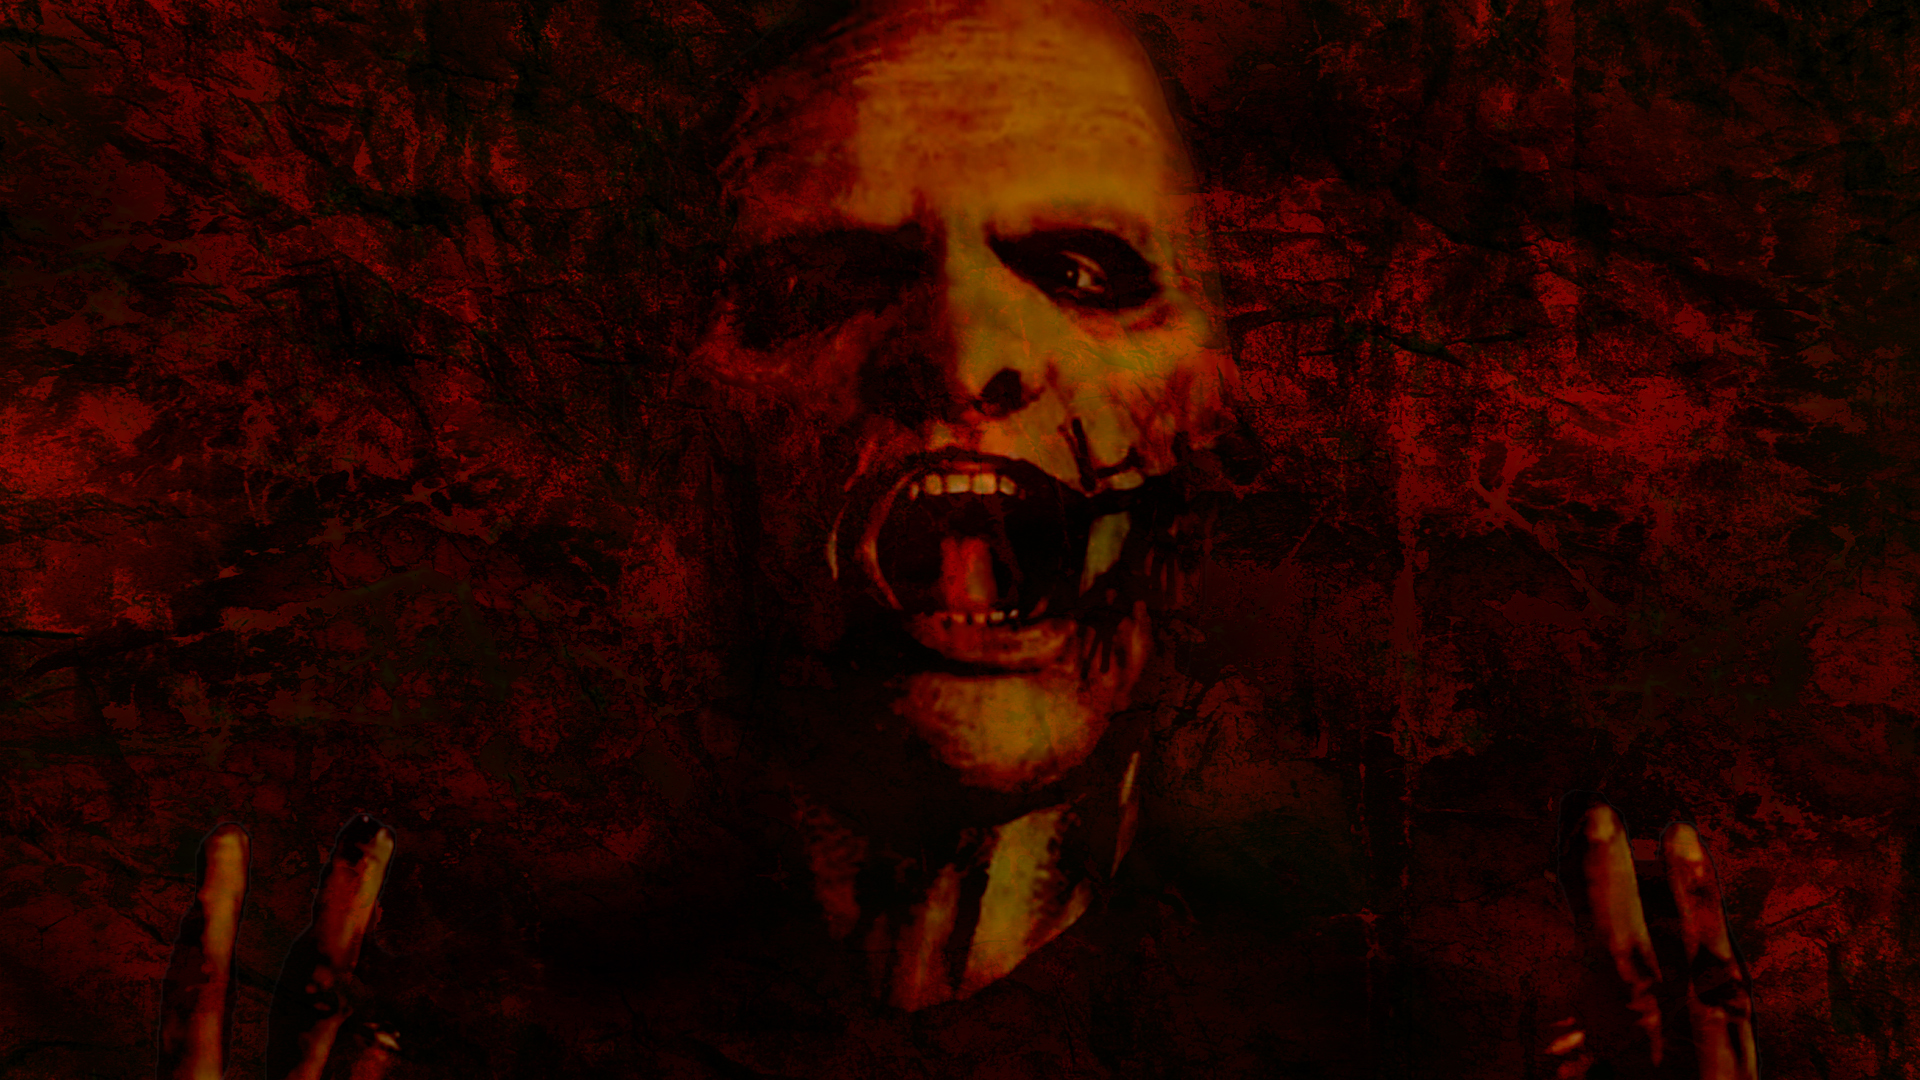 Pin Corey Taylor Wallpaper Slipknot 02 By 6vampire6angel6 1920x1080